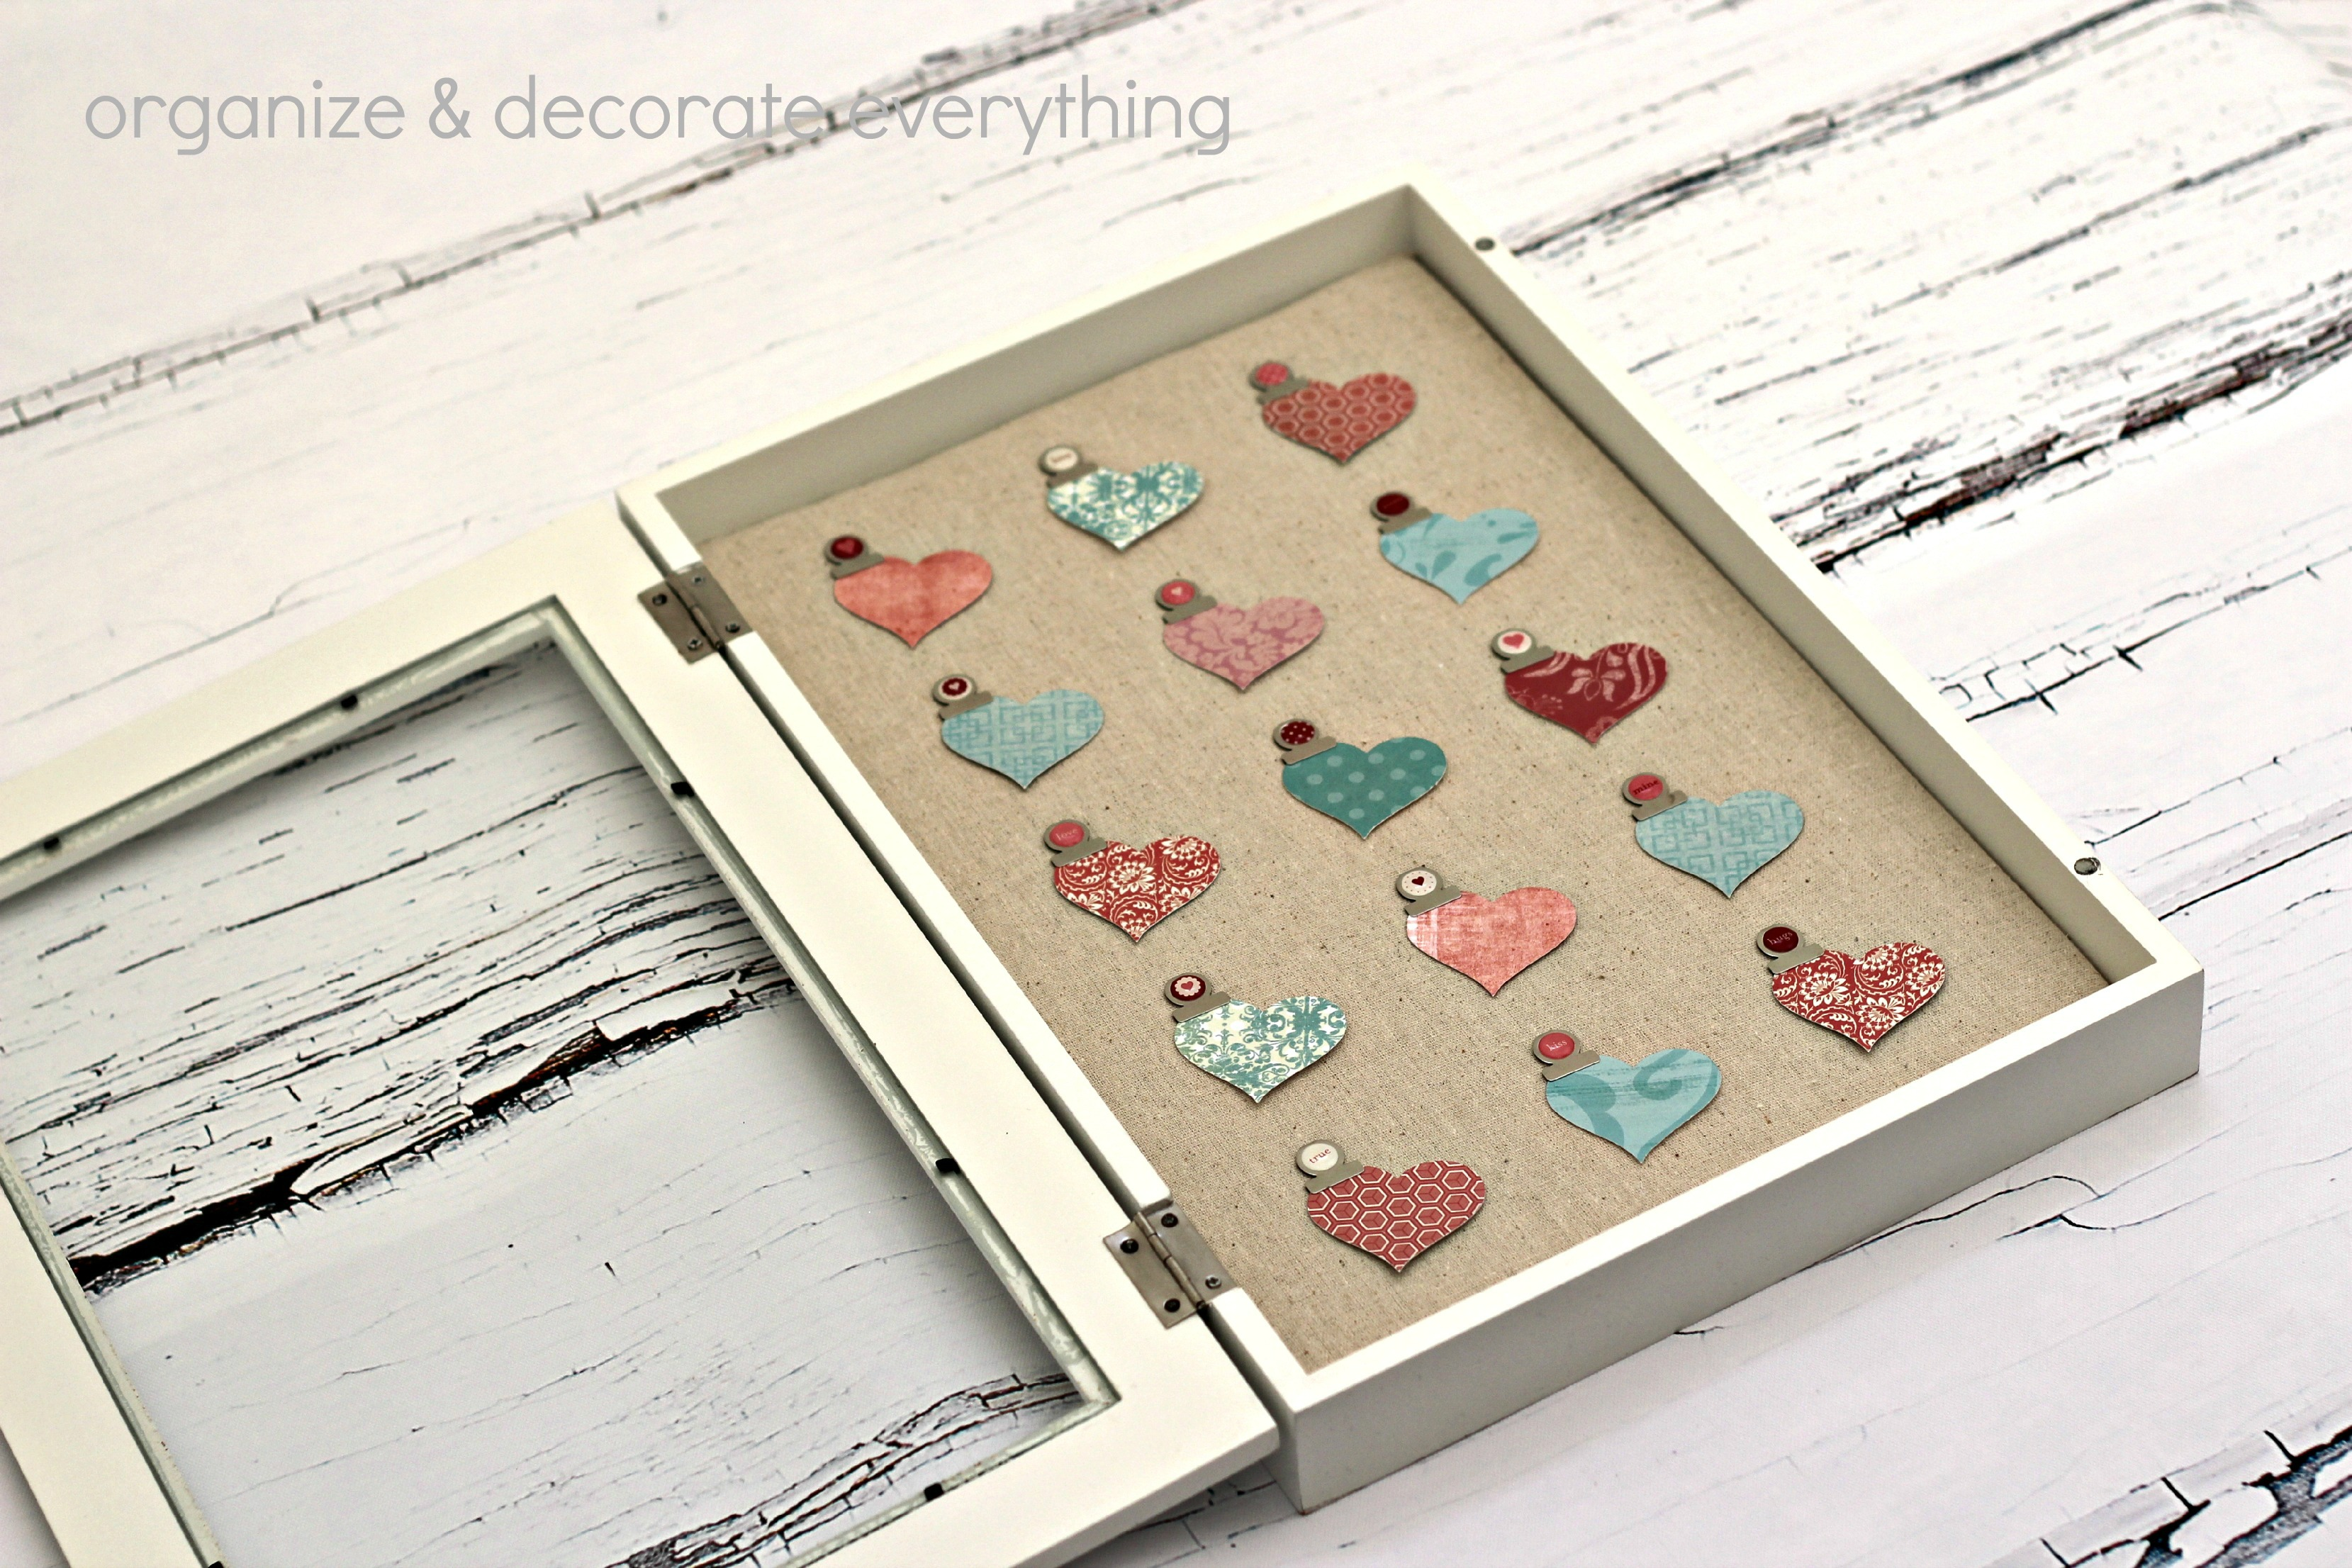 Heart Specimen Art from Organize and Decorate Everything ...